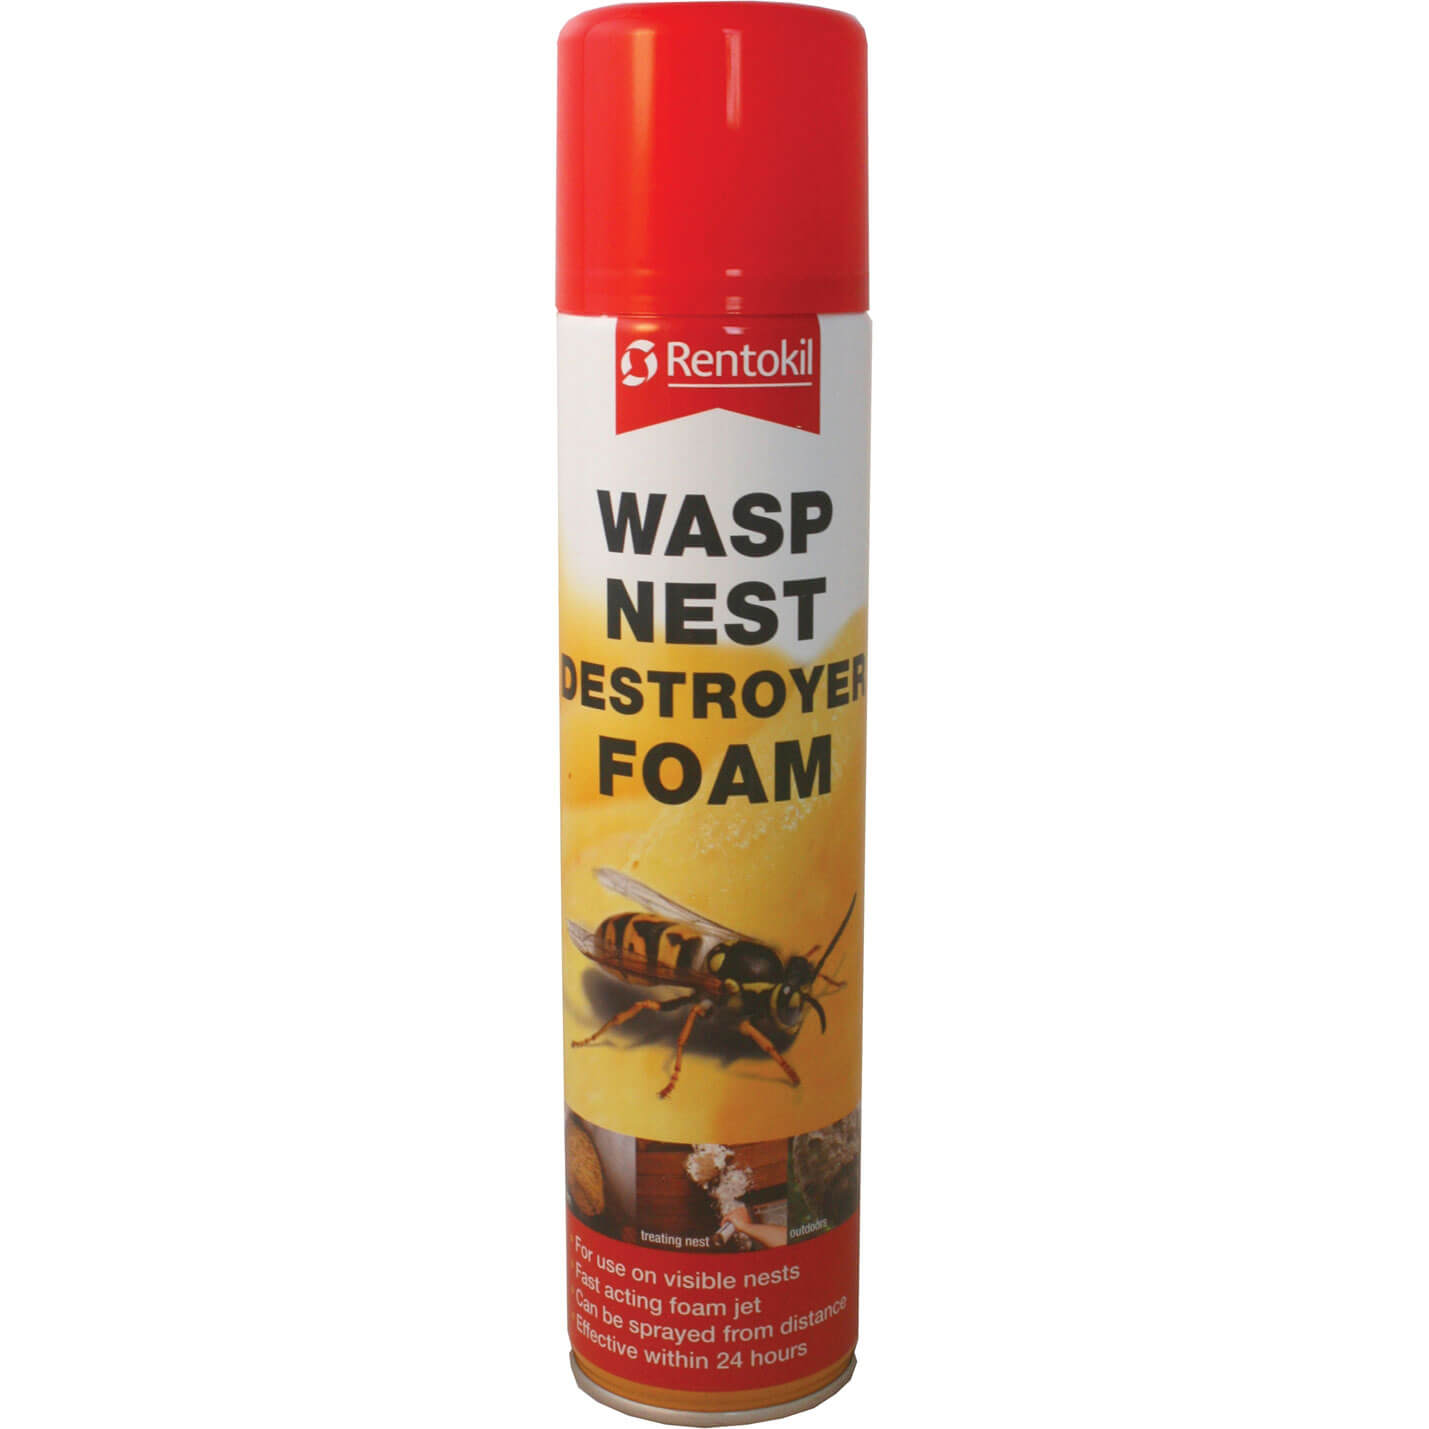 Image of Rentokil Wasp Destroy Foam Aerosol 300ml